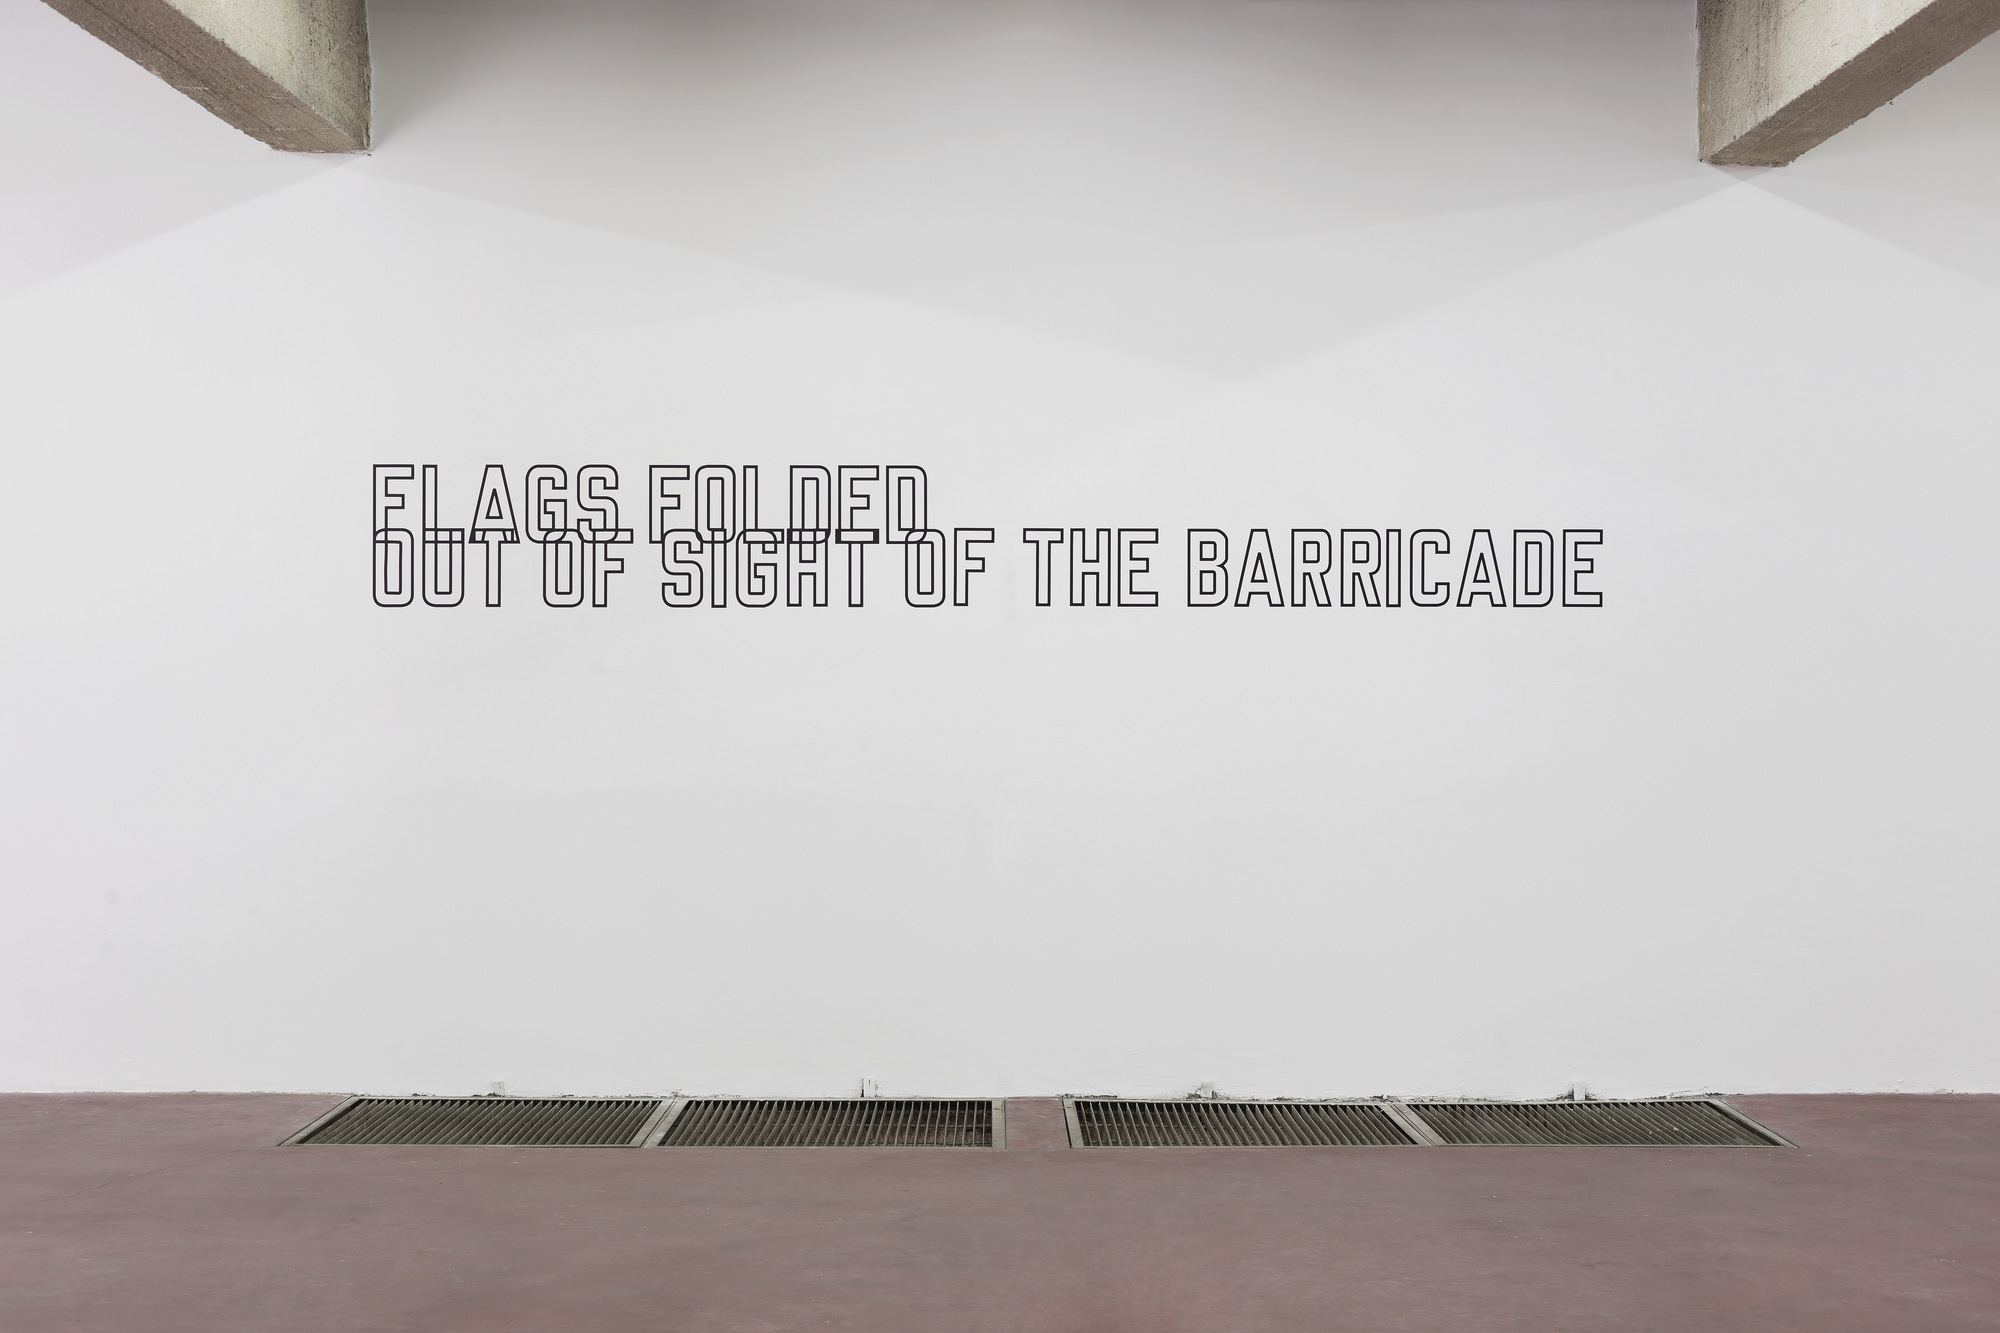 Lawrence Weiner, Flags Folded out of Sight of the Barricade, 1989, vinyl text, dimensions variable, unique